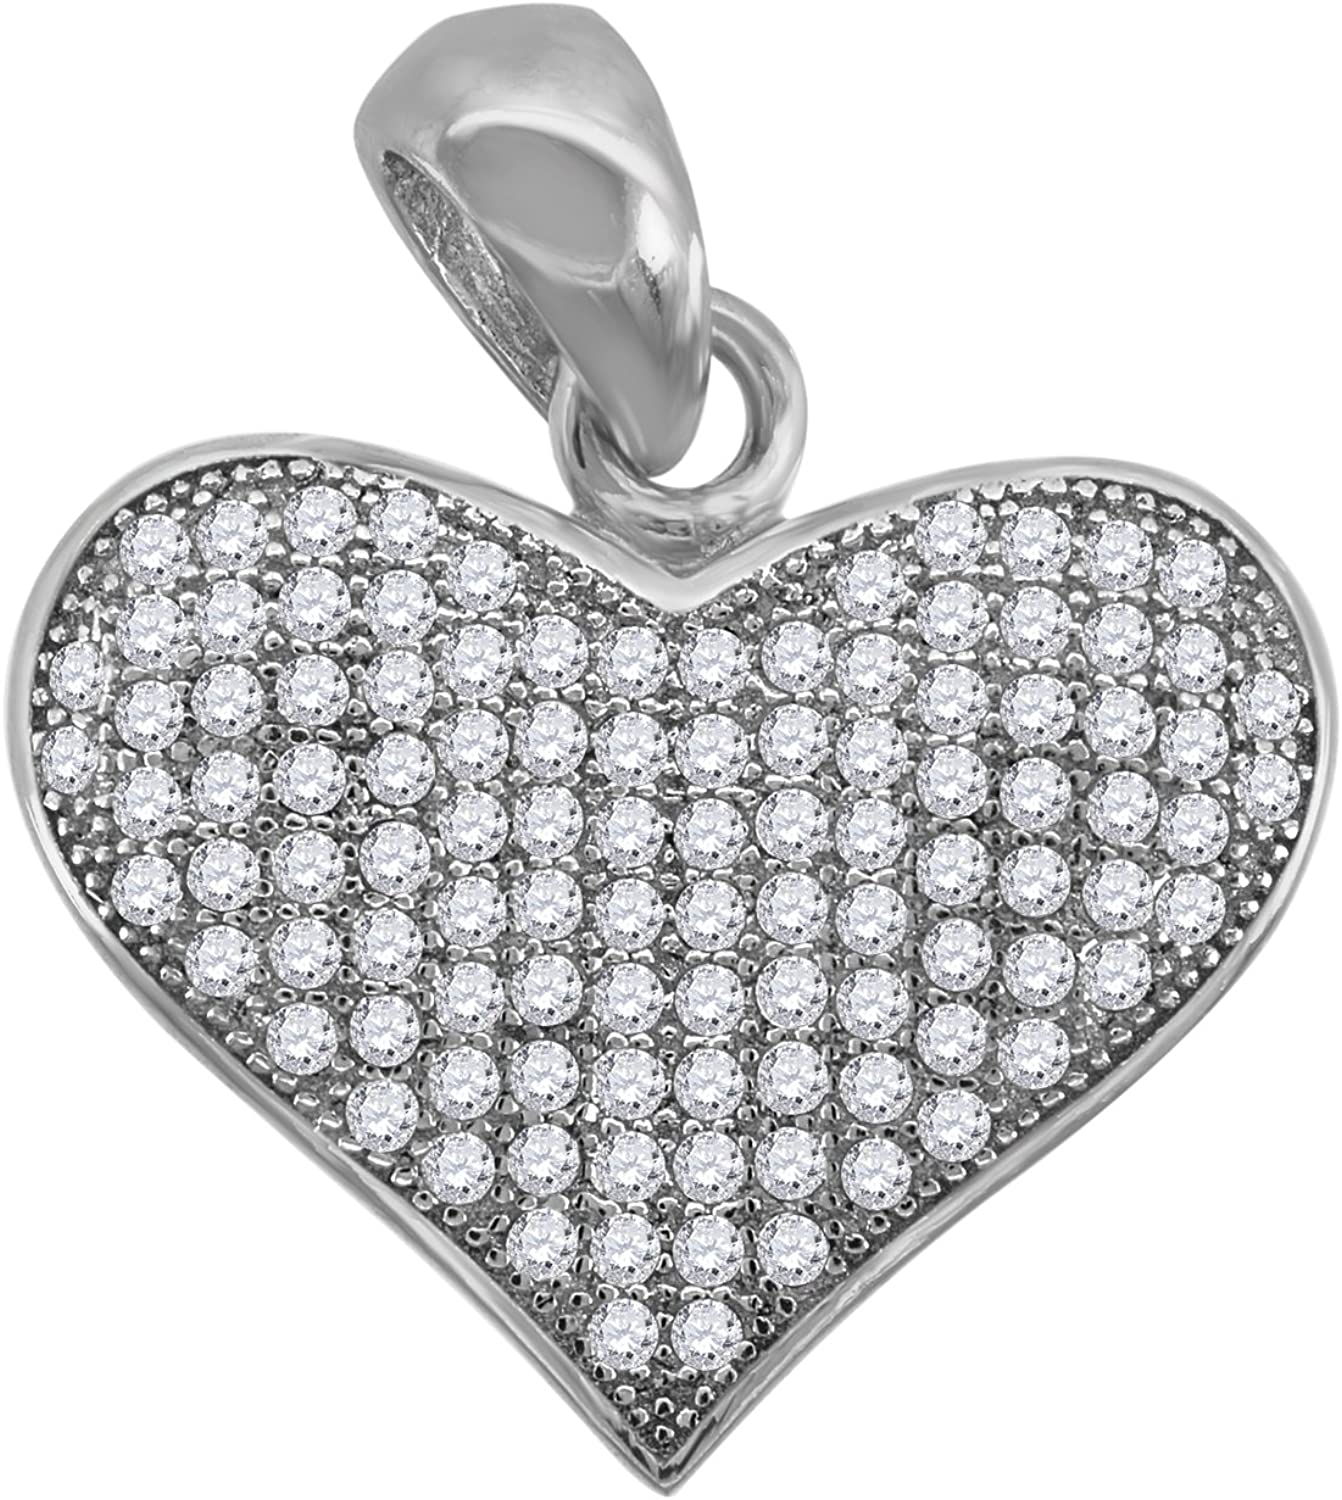 Saris and Things 925 Sterling Silver Womens Round Cubic Zirconia CZ Heart Fashion Charm Pendant